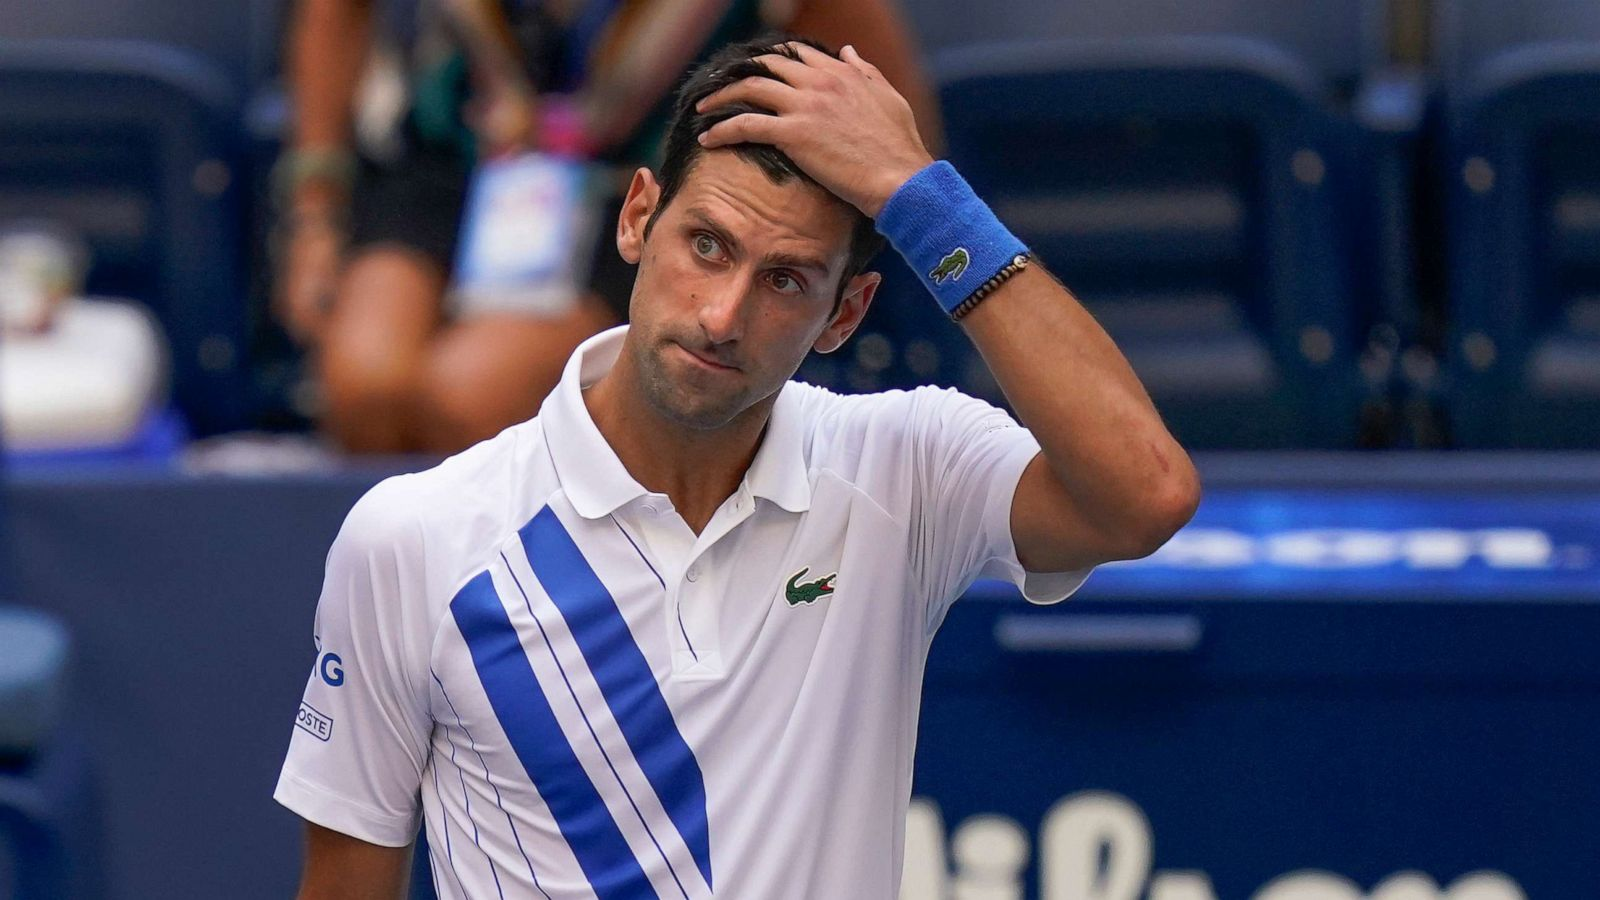 Oh Well! Djokovic Disqaulified From US Open For Hitting An Umpire